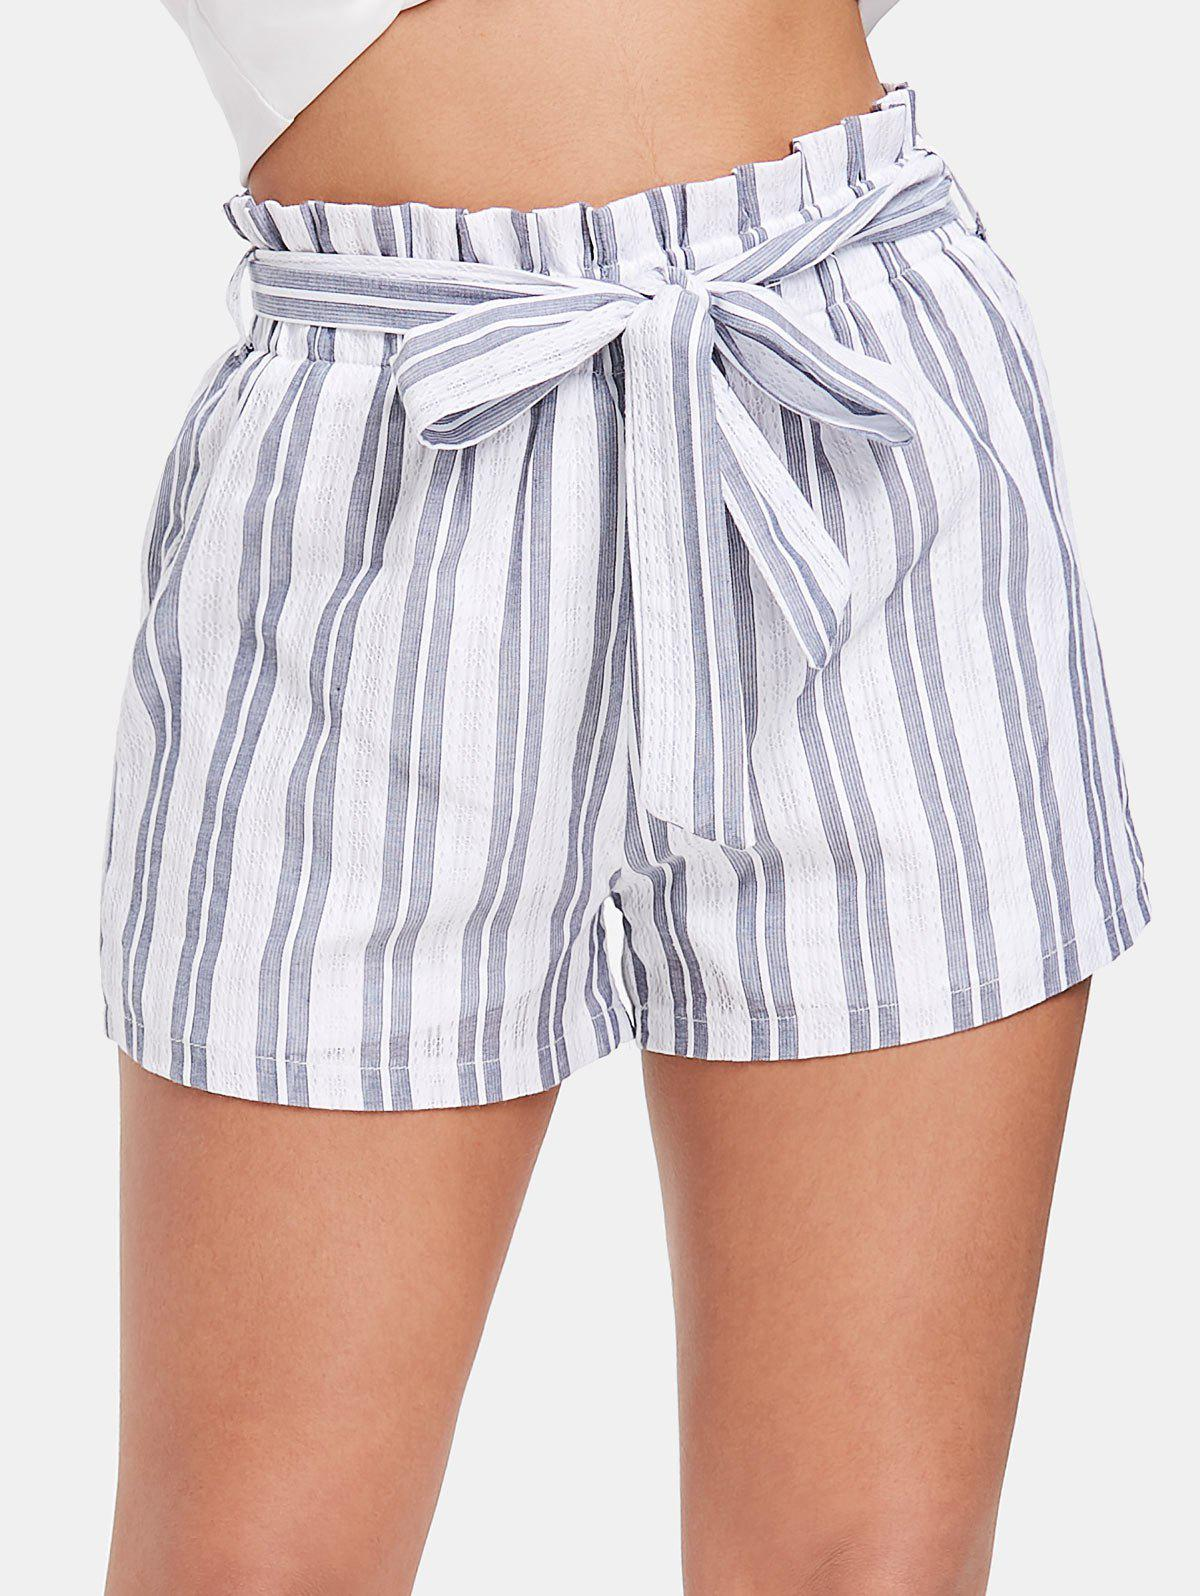 Outfits Striped High Waist Shorts with Belt